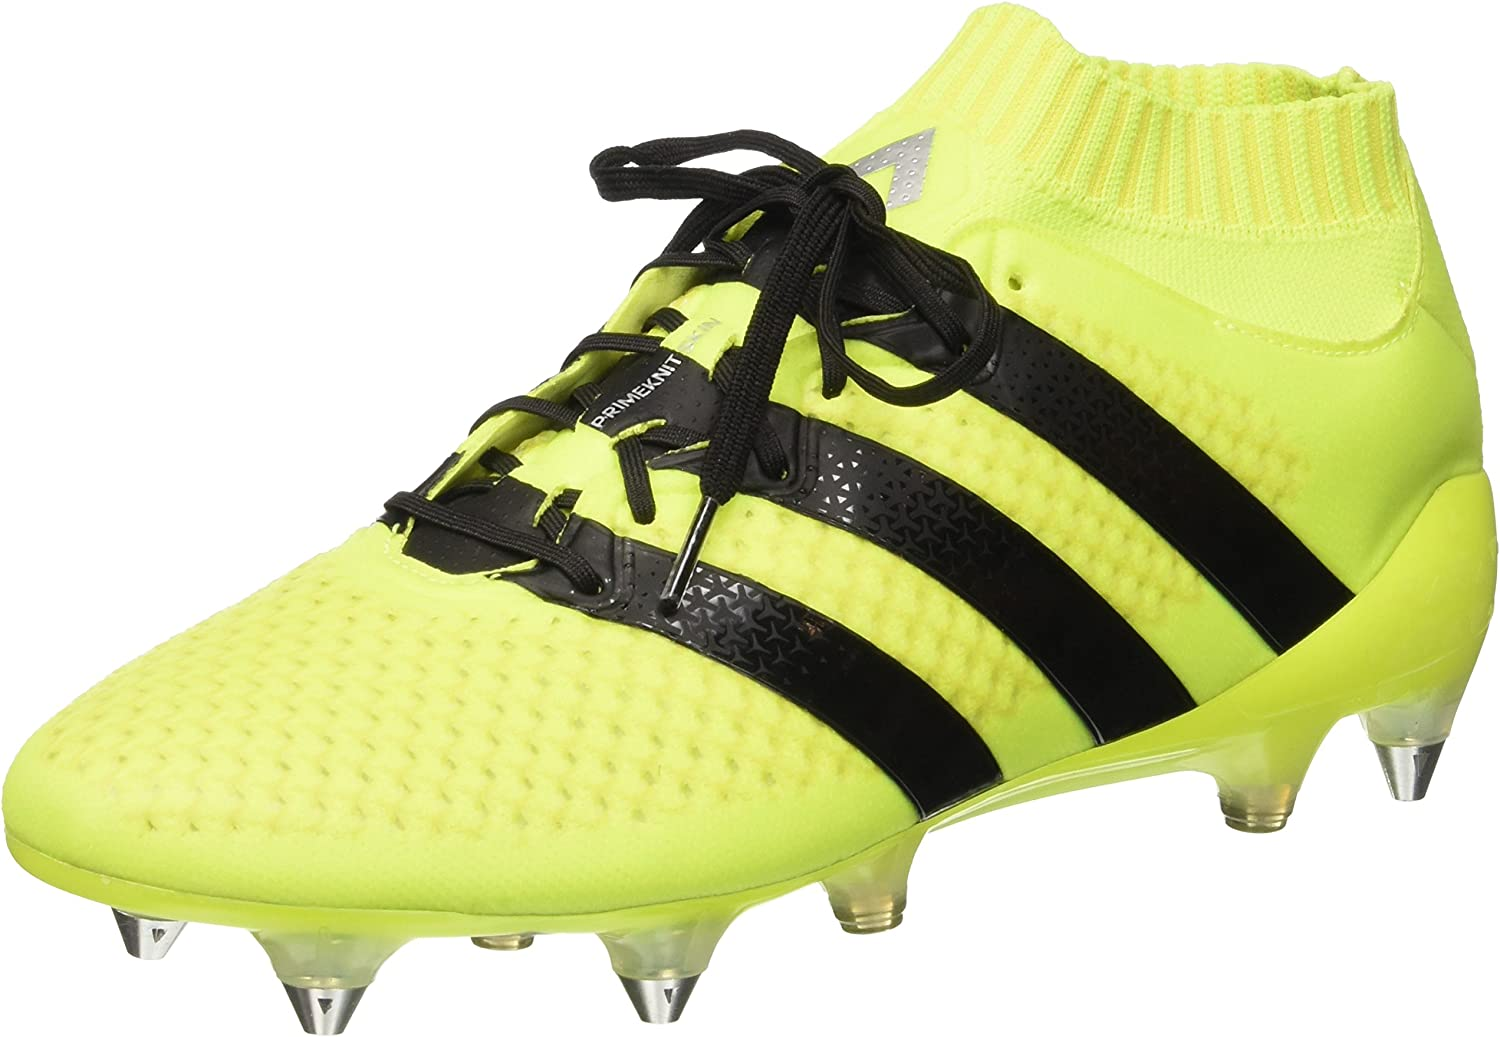 Adidas Ace 16.1 Primeknit SG Mens Soccer Boots Cleats